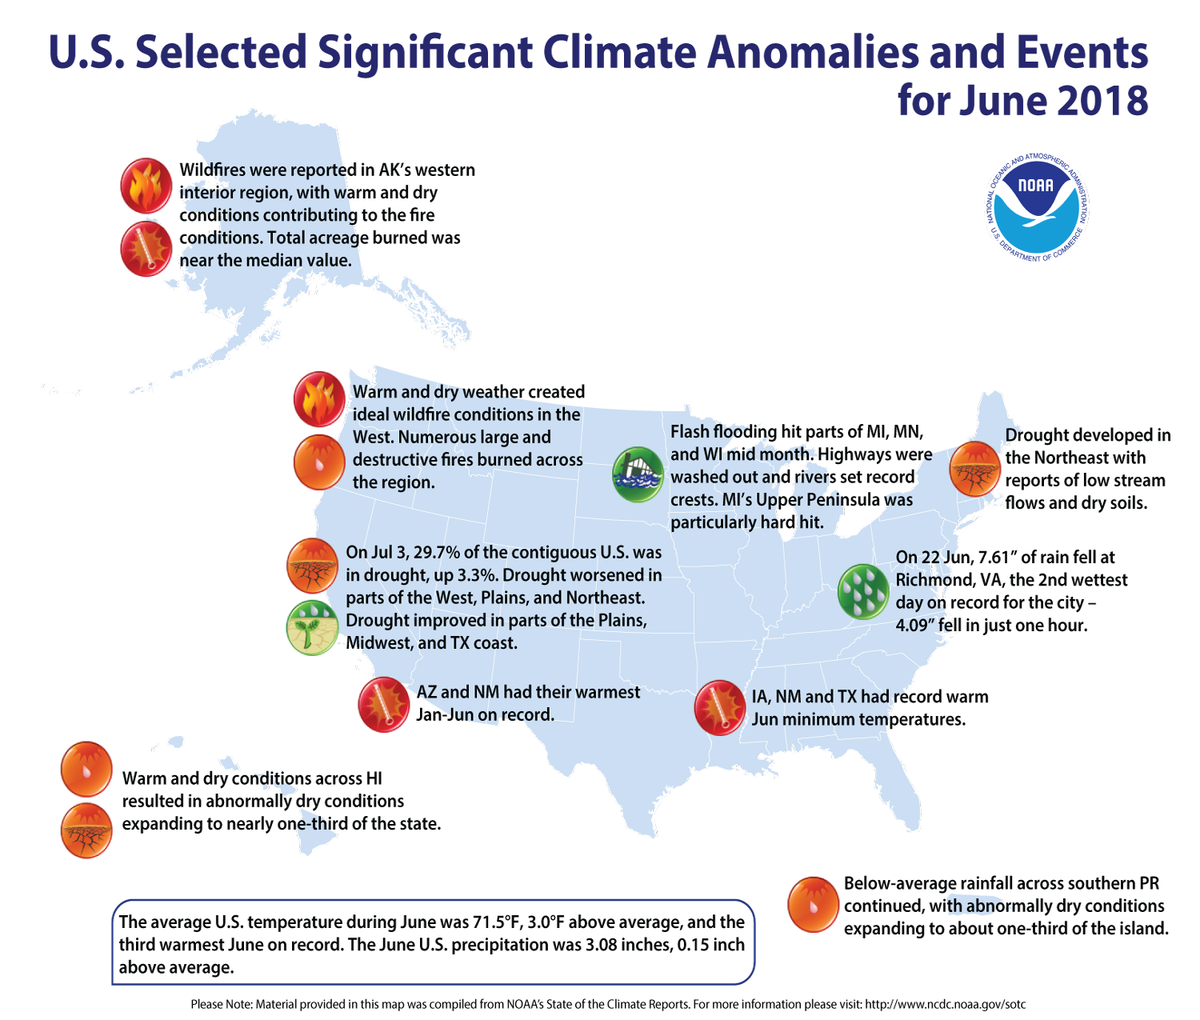 Map of U.S. selected significant climate anomalies and events for June 2018